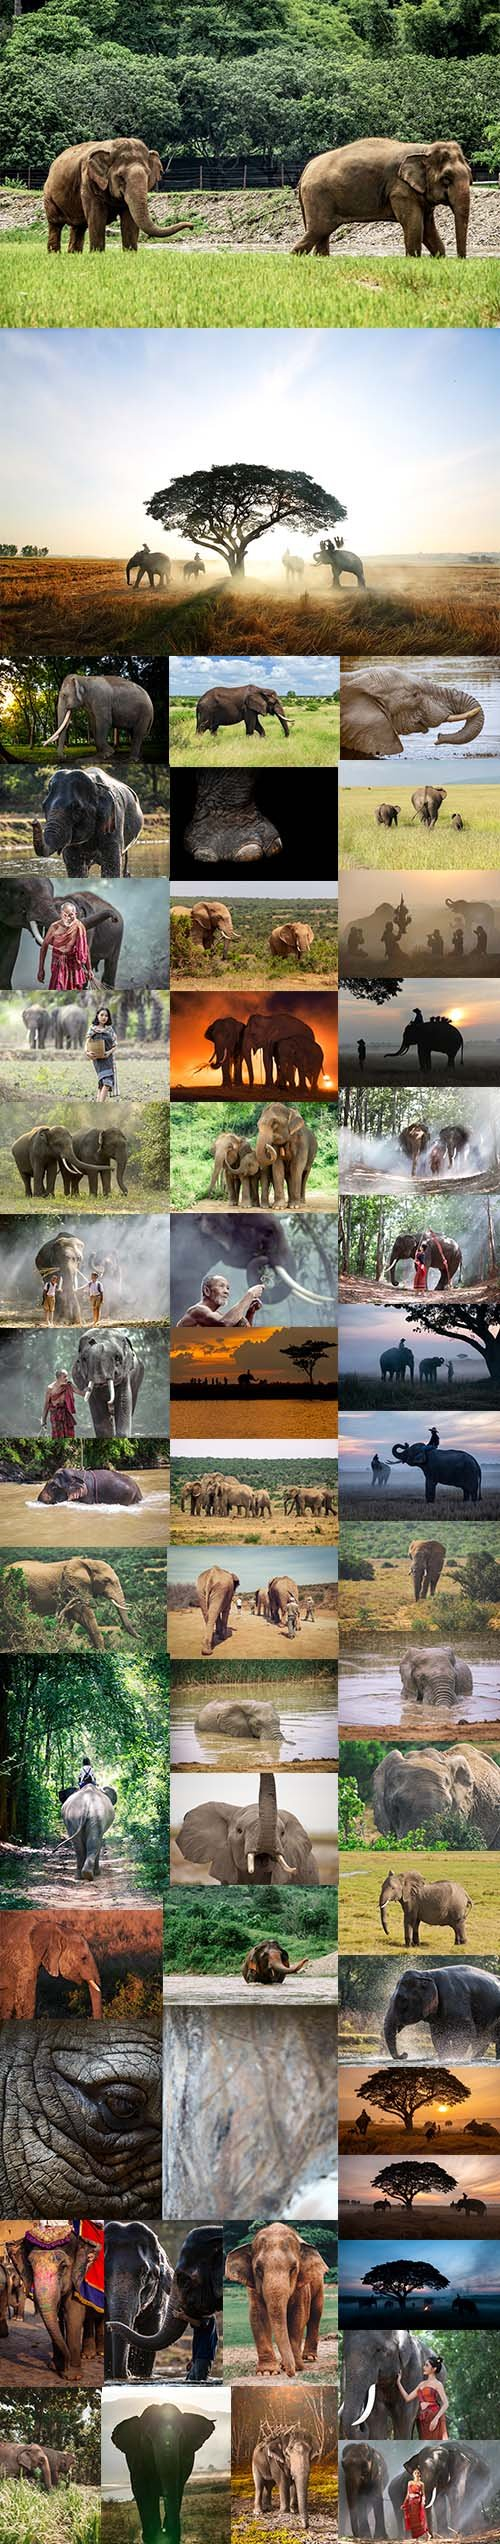 African Elephant - UHQ JPEG Stock Photo Bundle